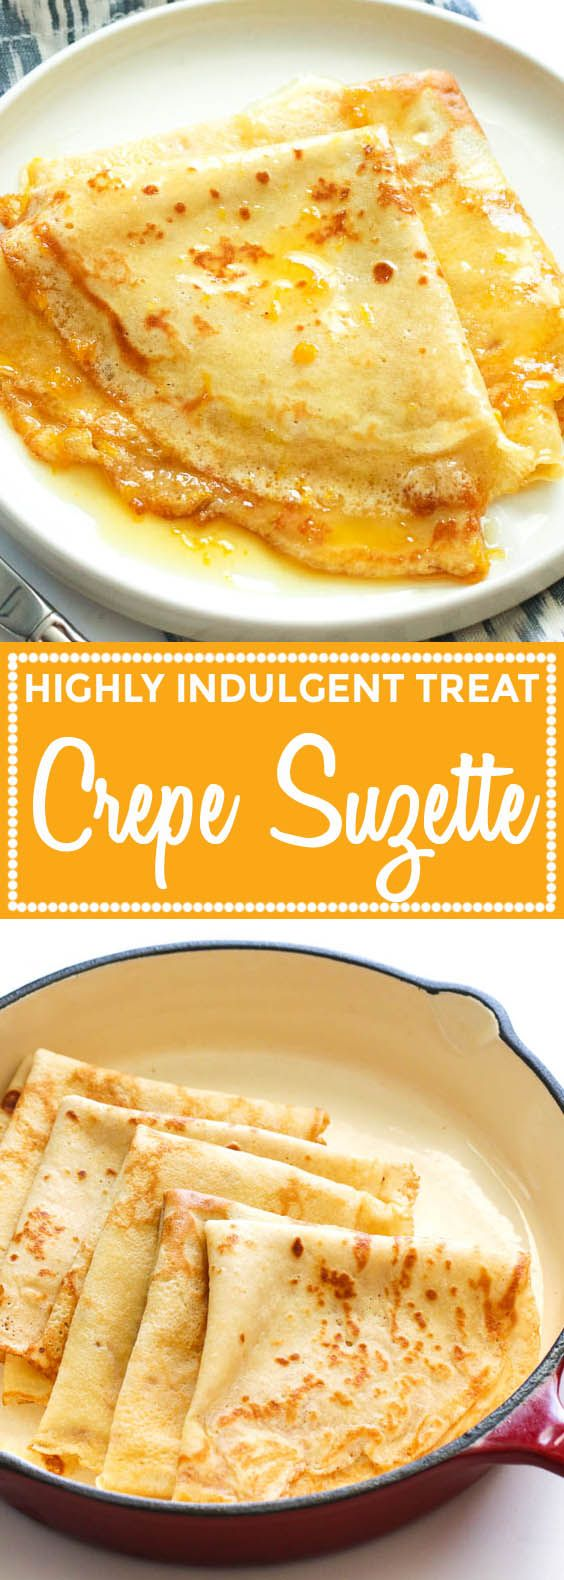 Photo of Crepe Suzette – Immaculate Bites